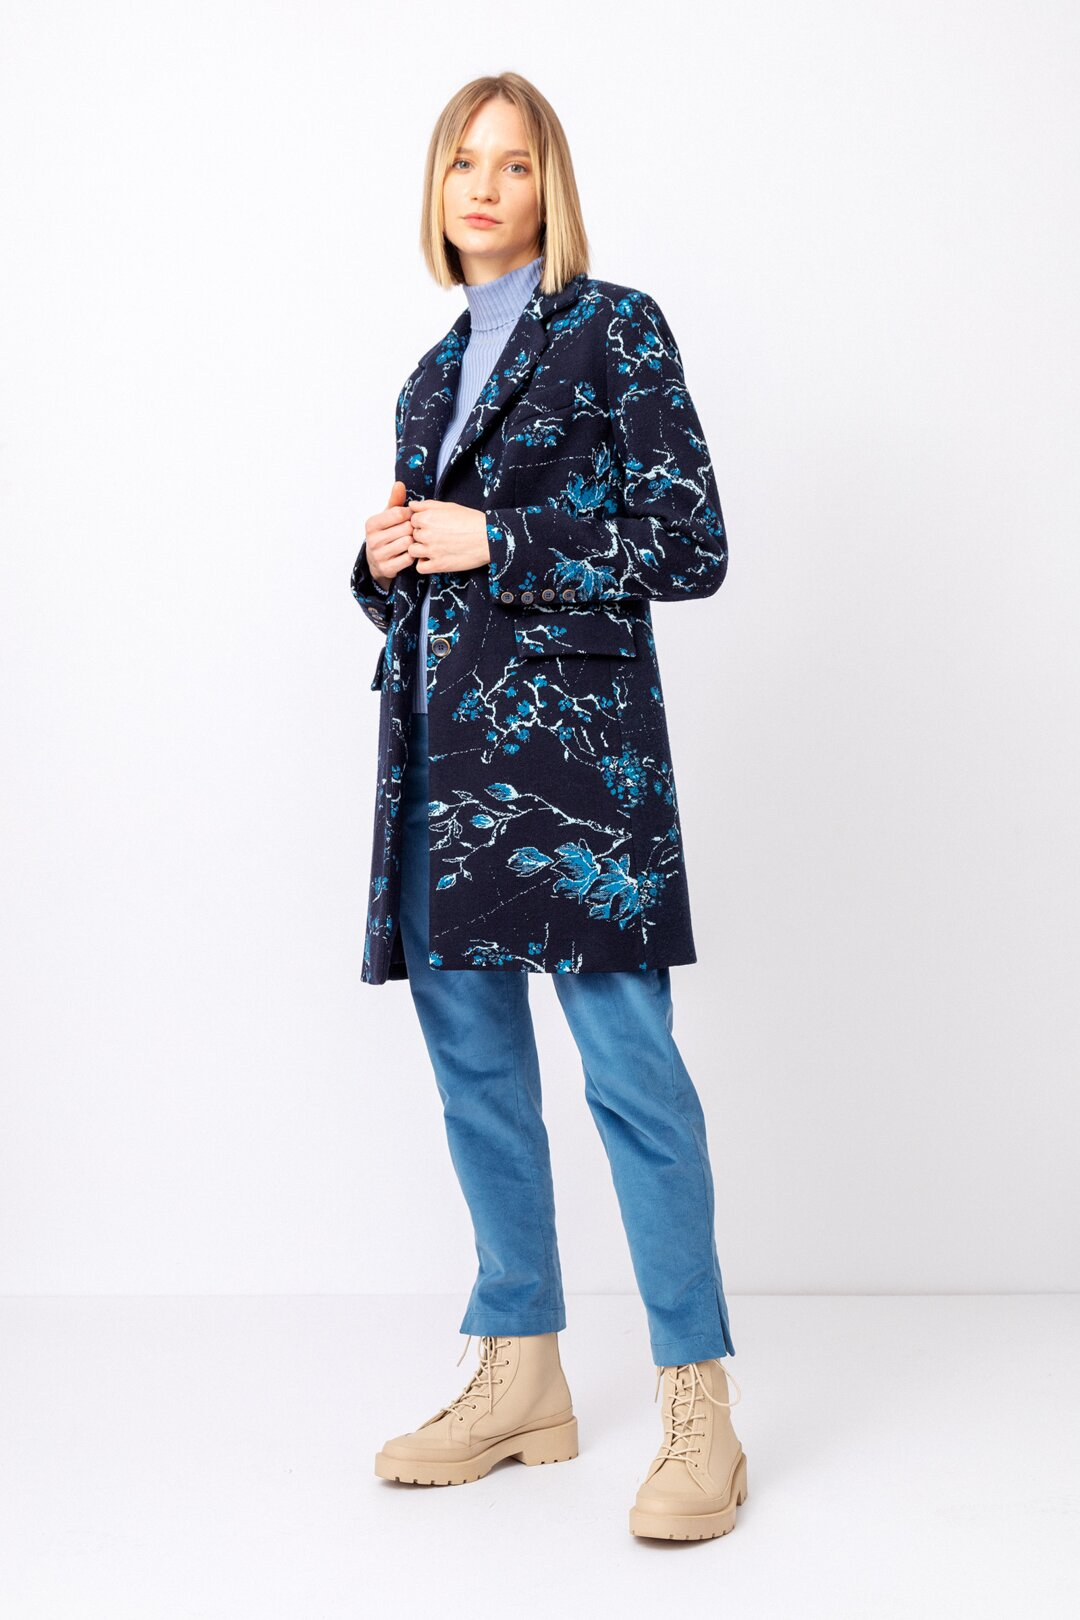 outfit-7c8a8605